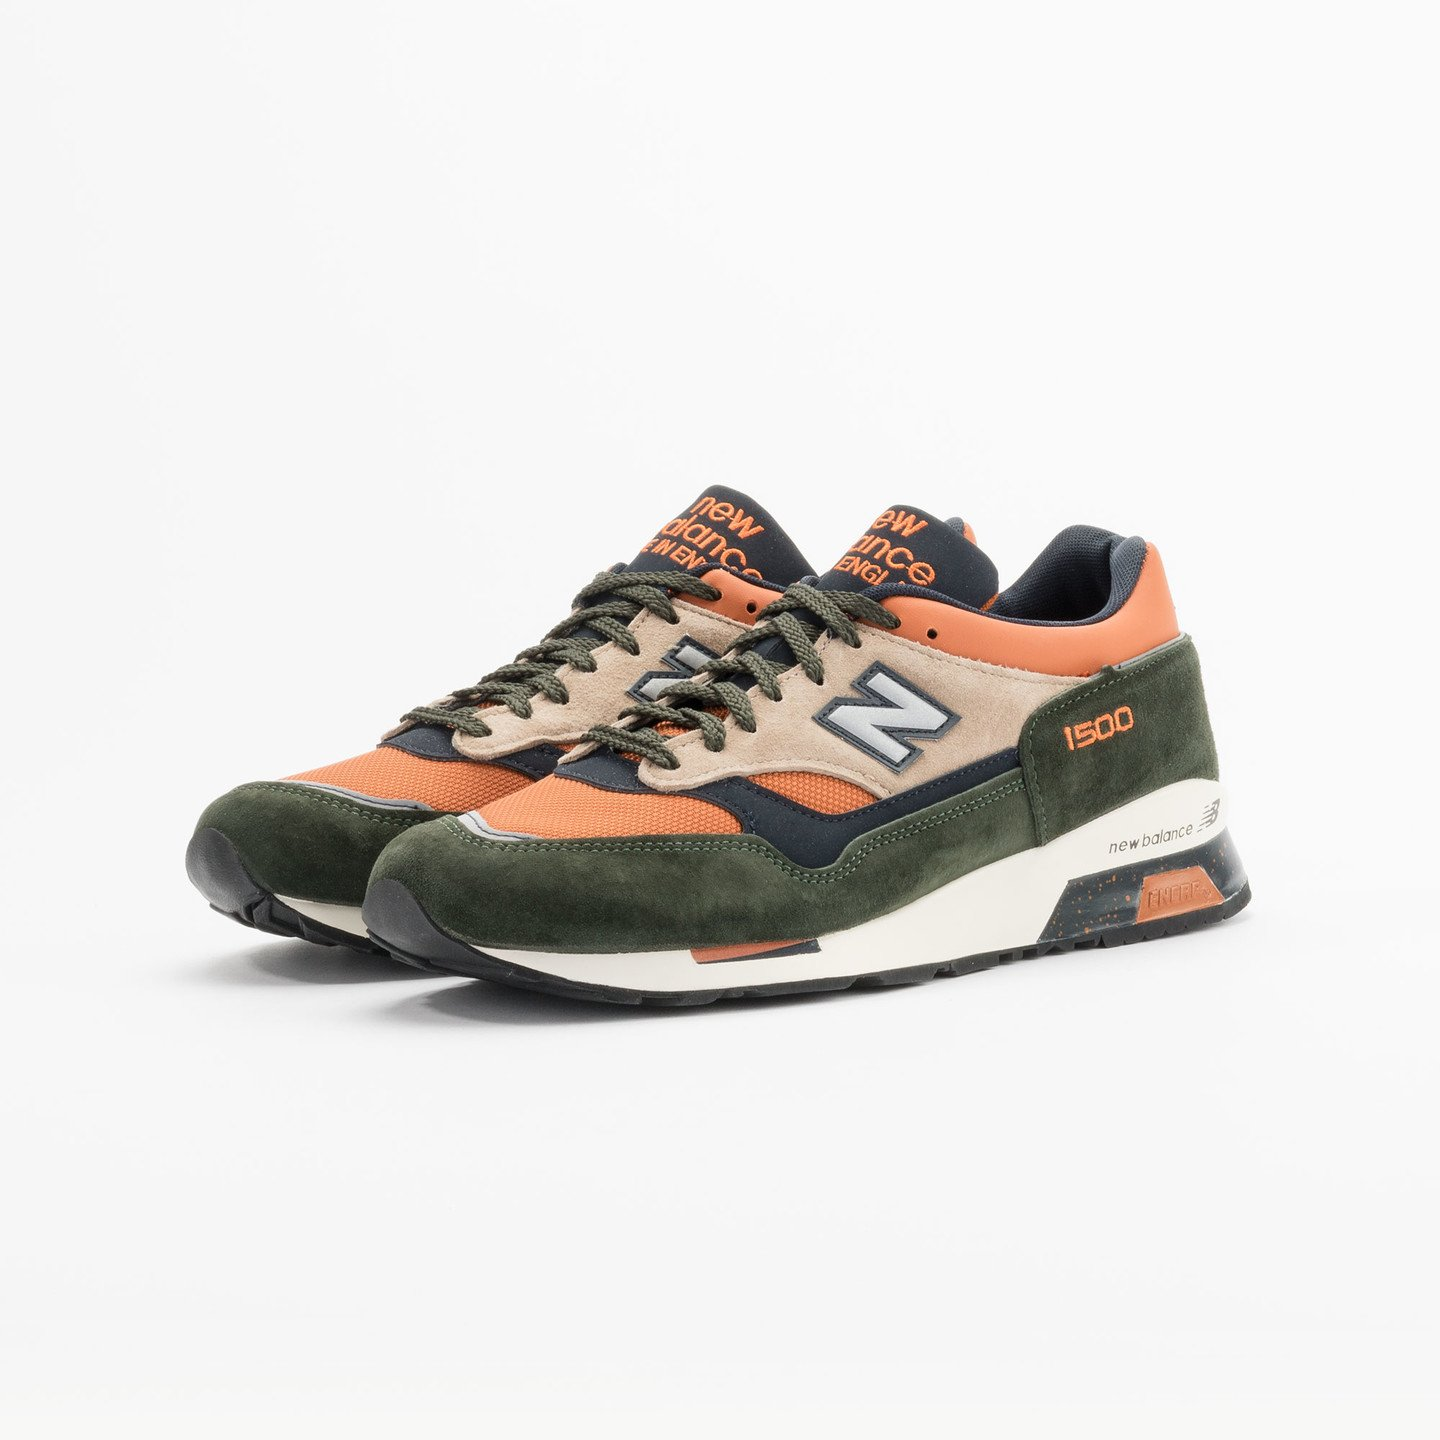 New Balance M1500 RO - Made in England Green / Orange M1500RO-46.5